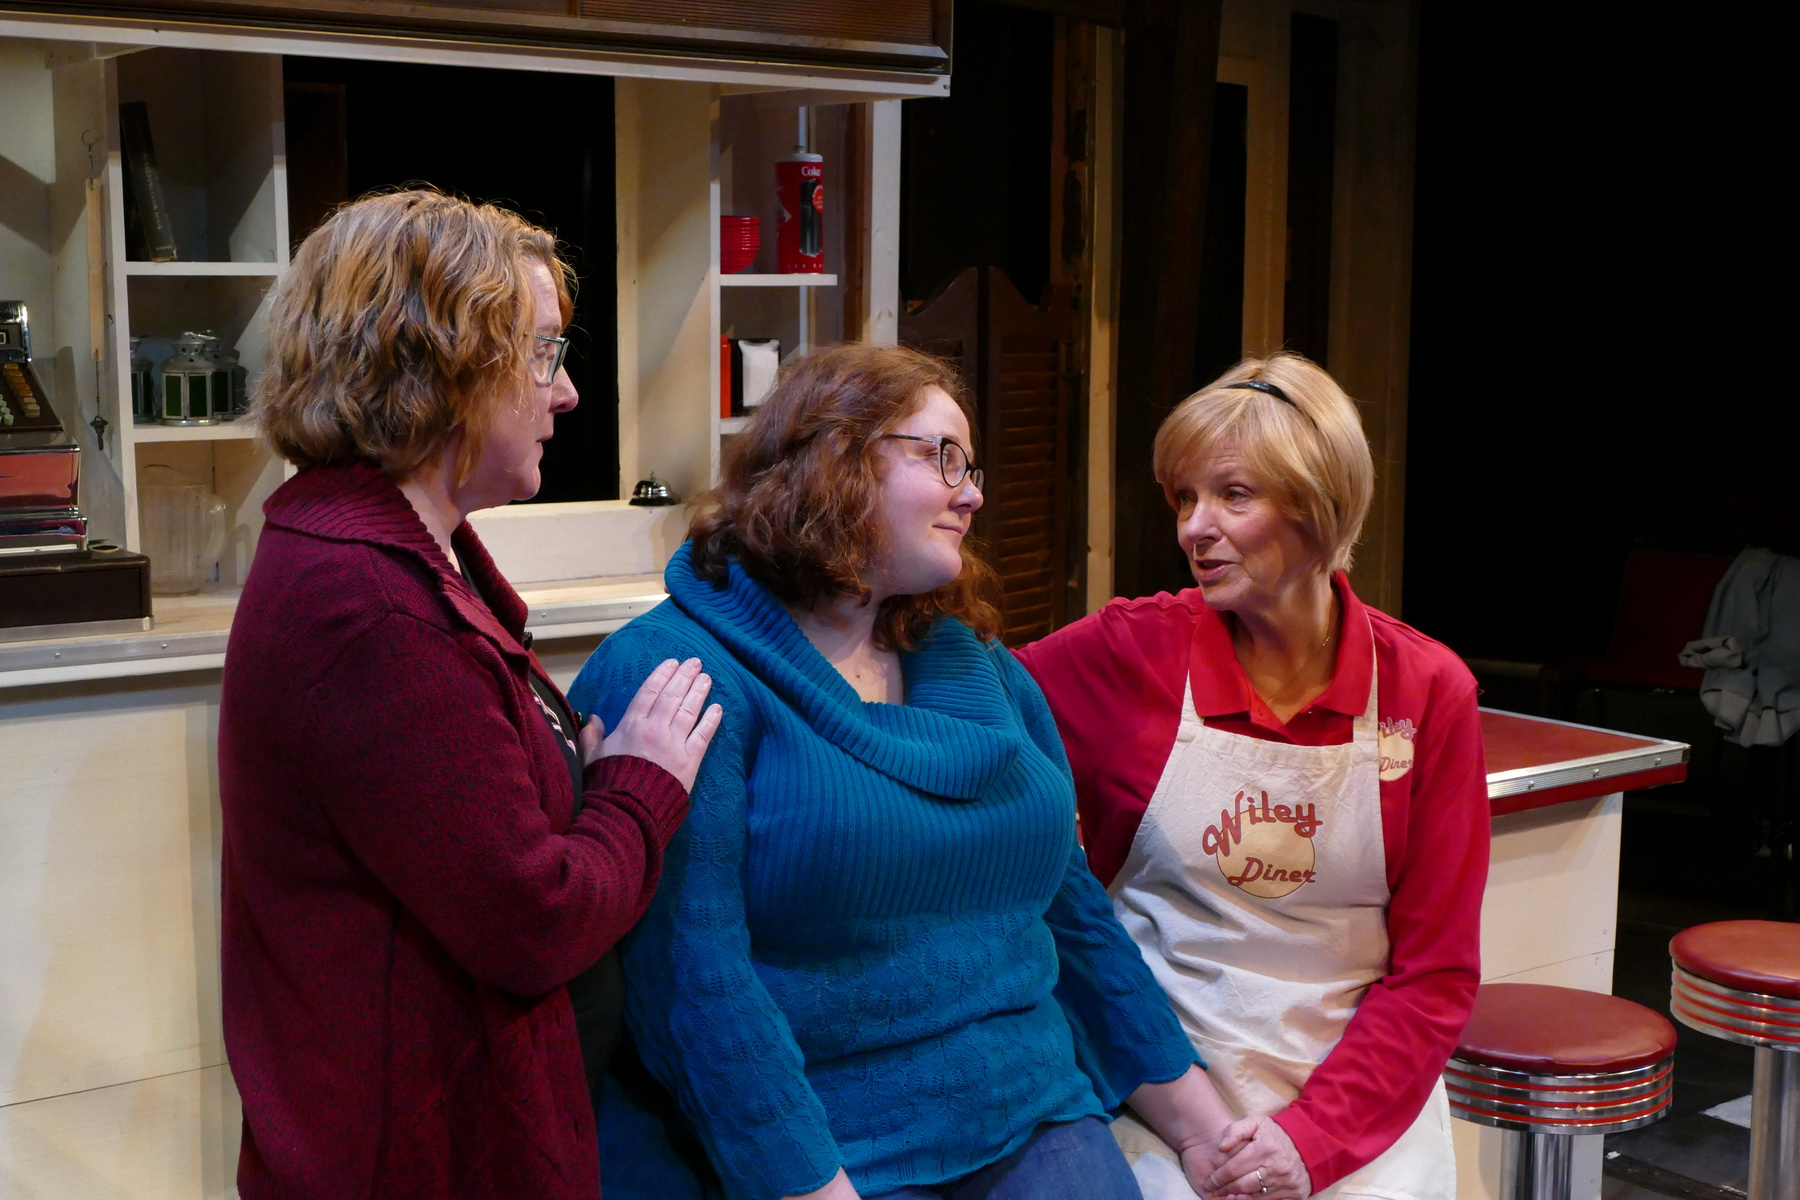 Lisa L Wiley as Kate Myers, Michelle Deyarmin as Lily Flores and Anne McEvoy as Sheila Banks